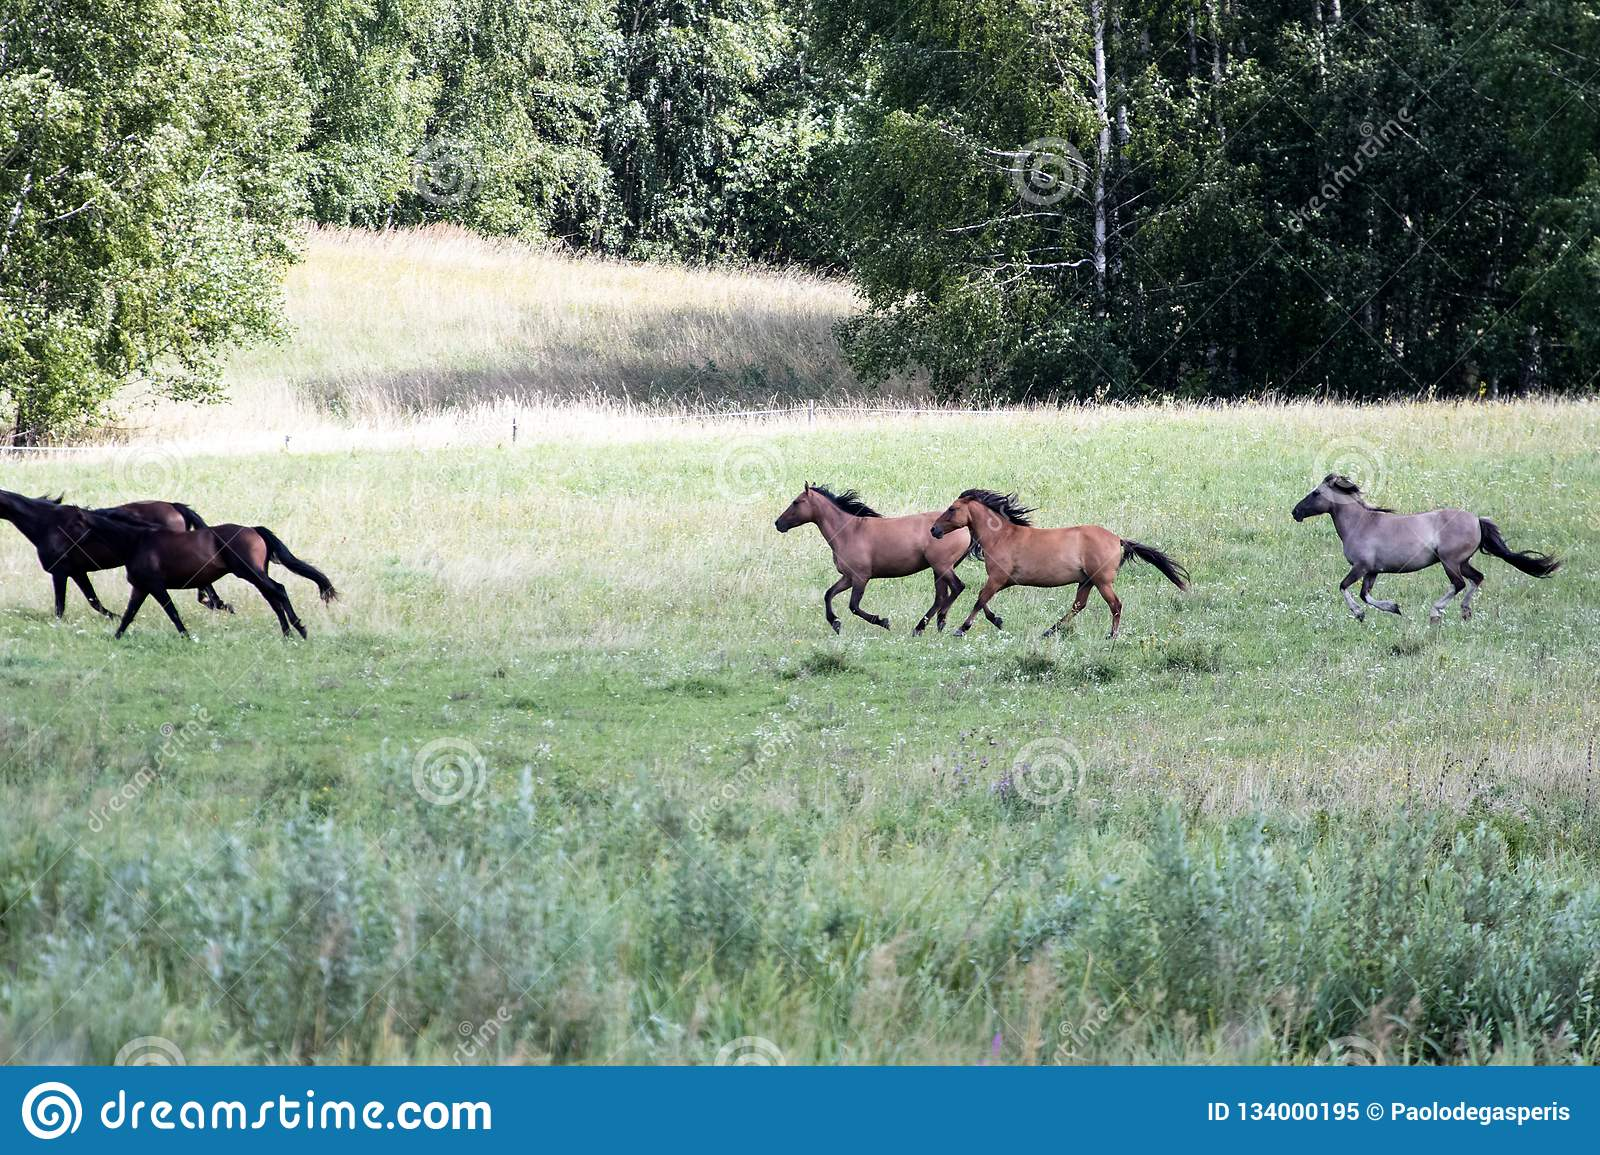 Wild Horses Running At A Gallop In A Countryside Plain Green Me Stock Image Image Of Freedom Grazing 134000195